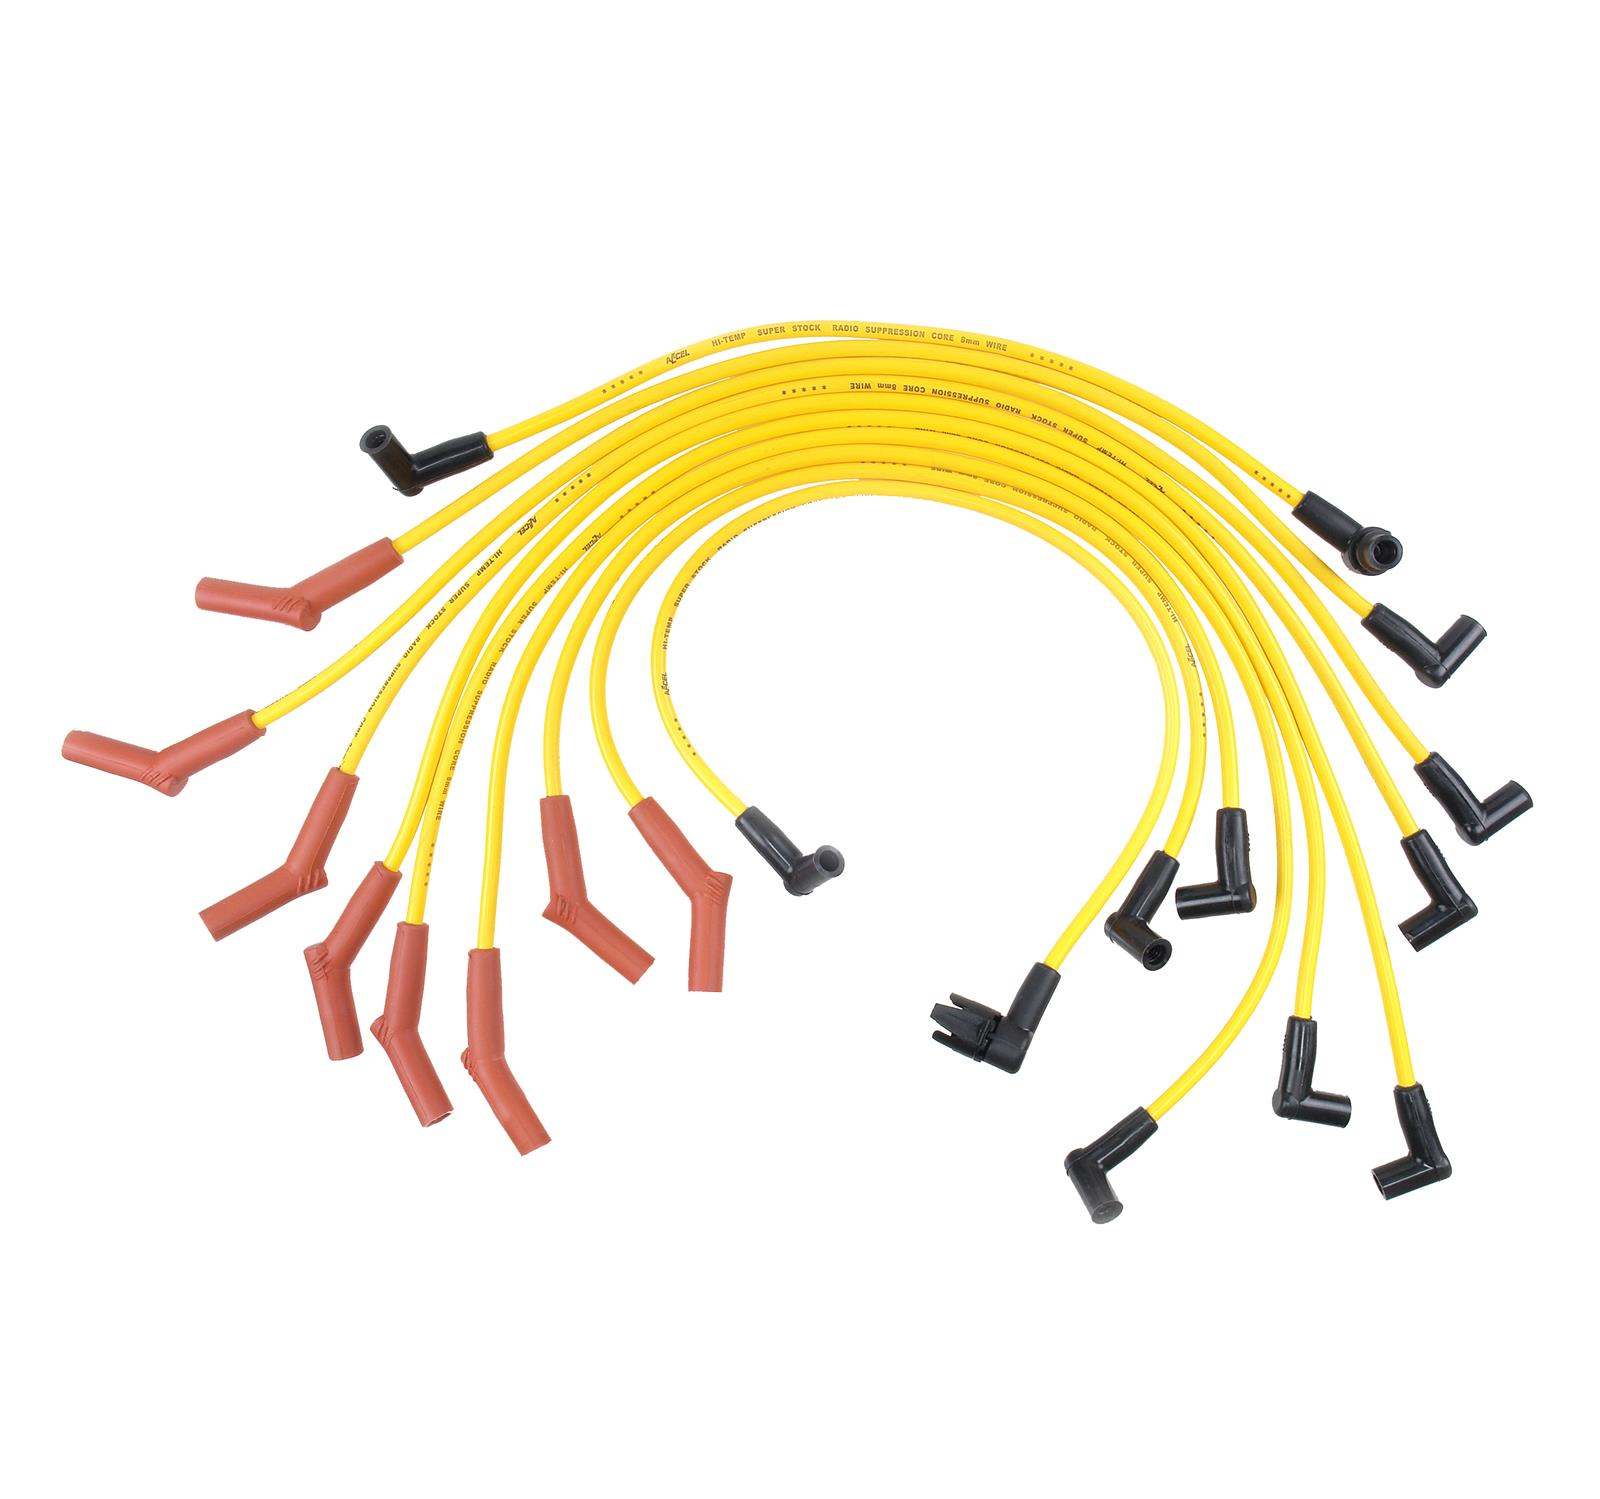 hight resolution of accel superstock 4000 series spark plug wire sets 4056 free shipping on orders over 99 at summit racing